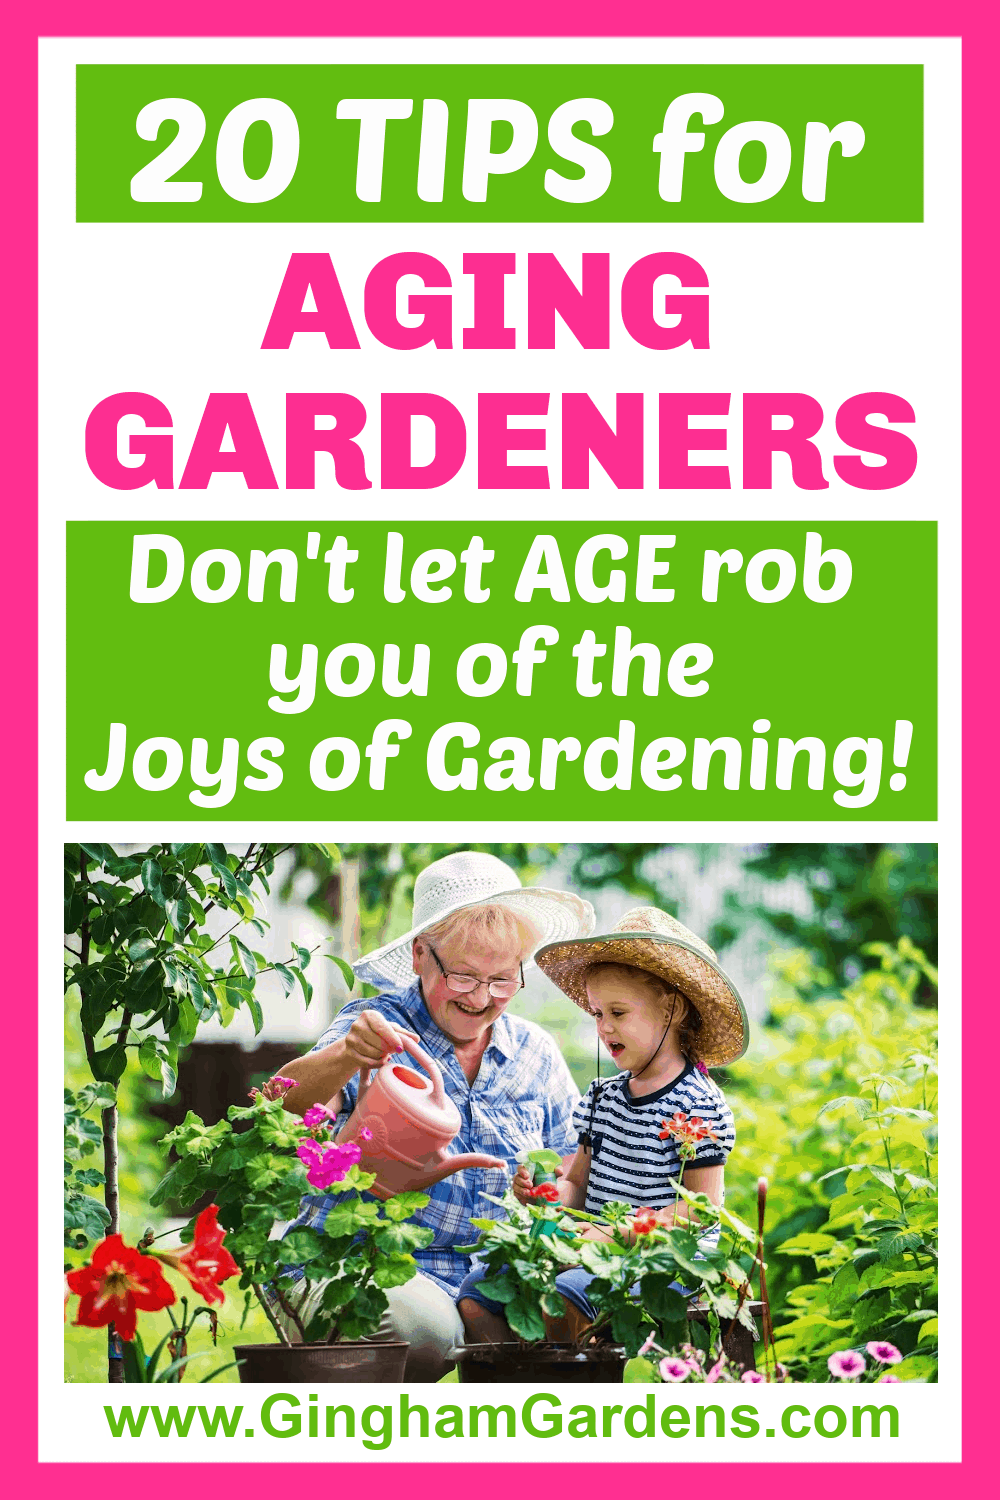 Image of an elderly gardener with text overlay - 20 tips for aging gardeners